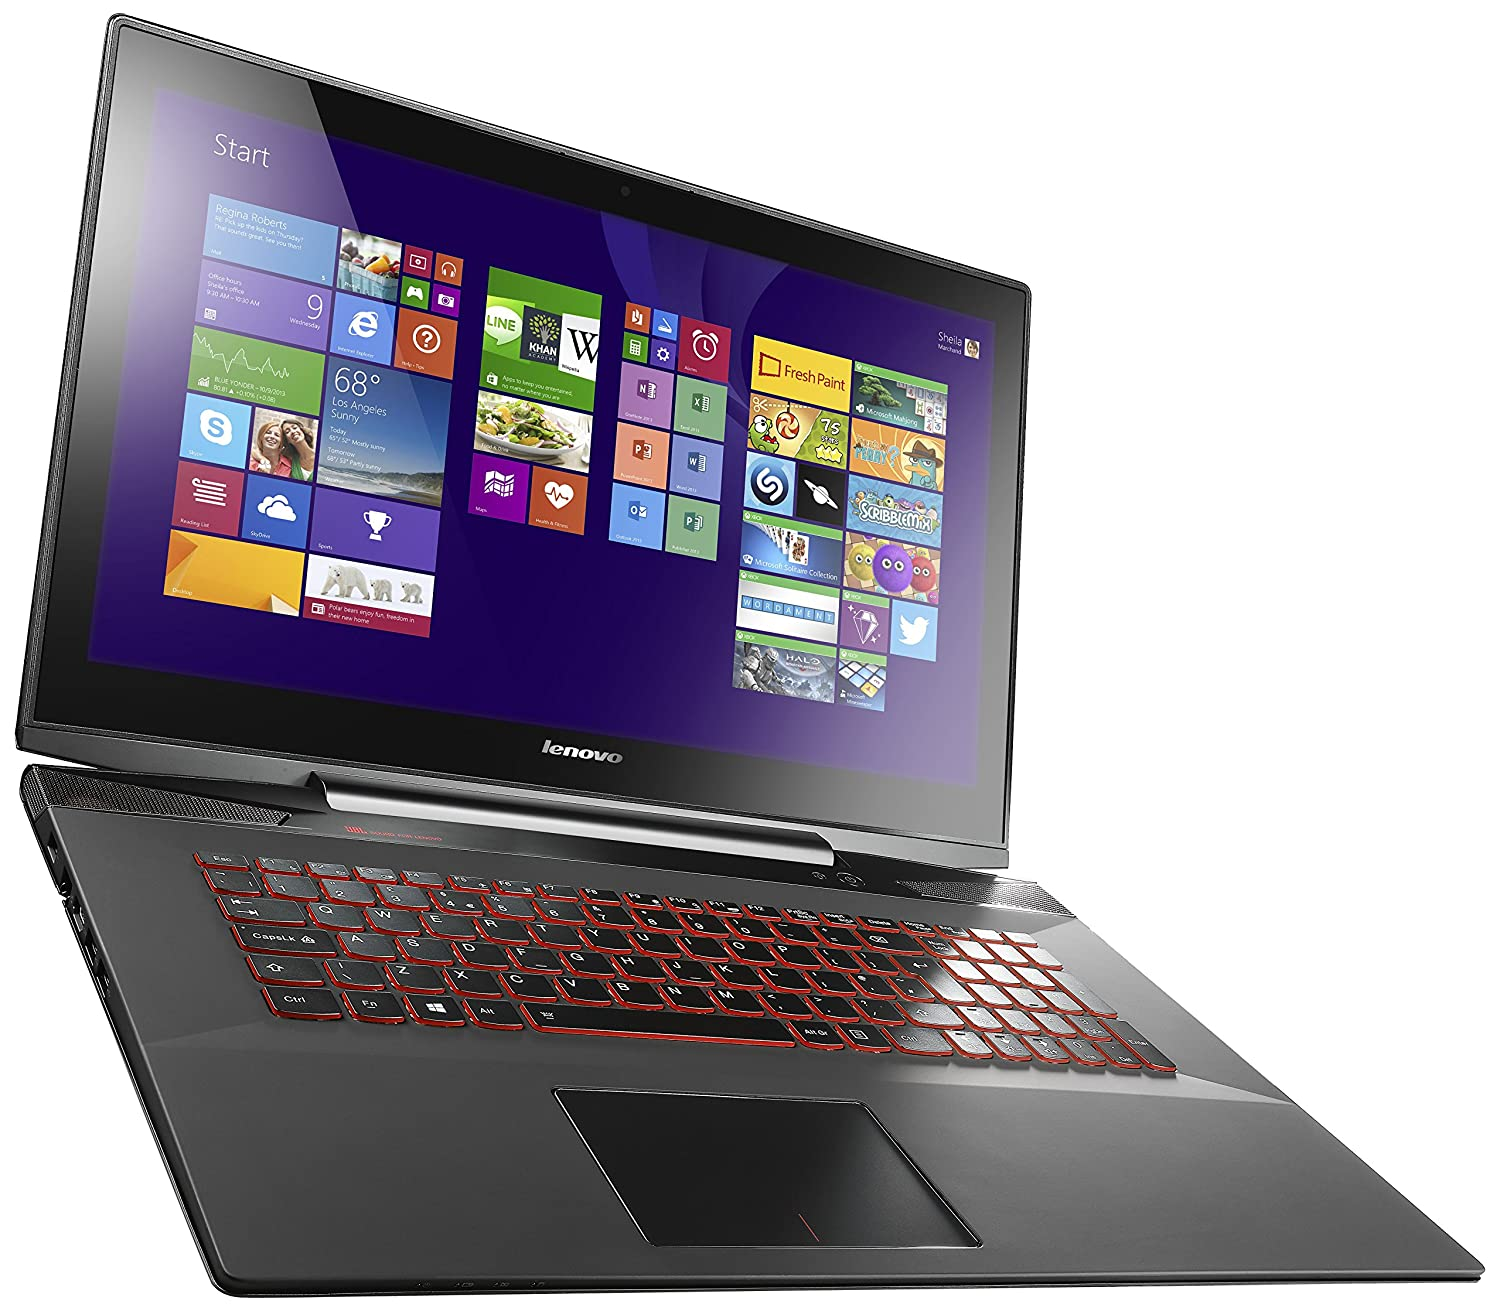 Amazon Lenovo Y70 17 3 Inch Touchscreen Gaming Laptop 80DU0034US Black puters & Accessories